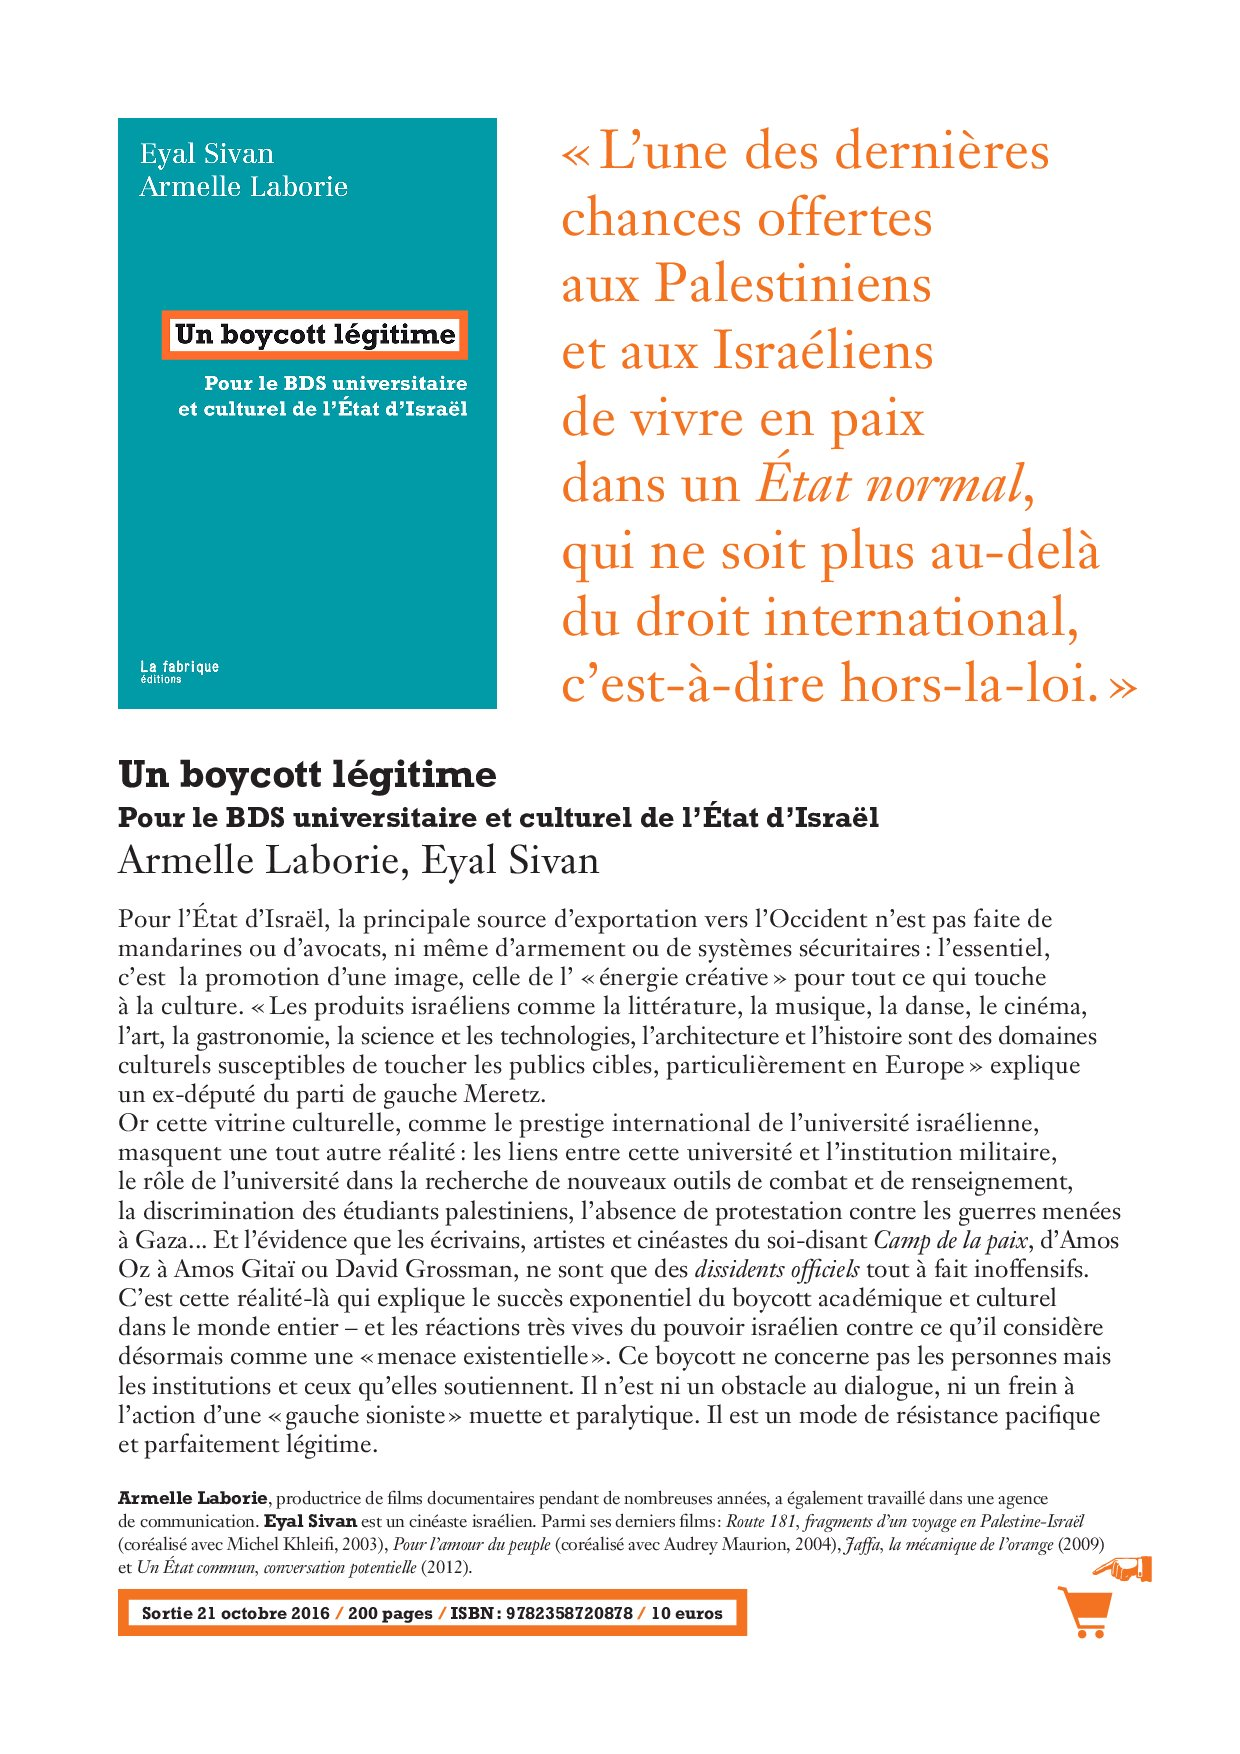 un_boycott_legitime_catalogue_la_fabrique